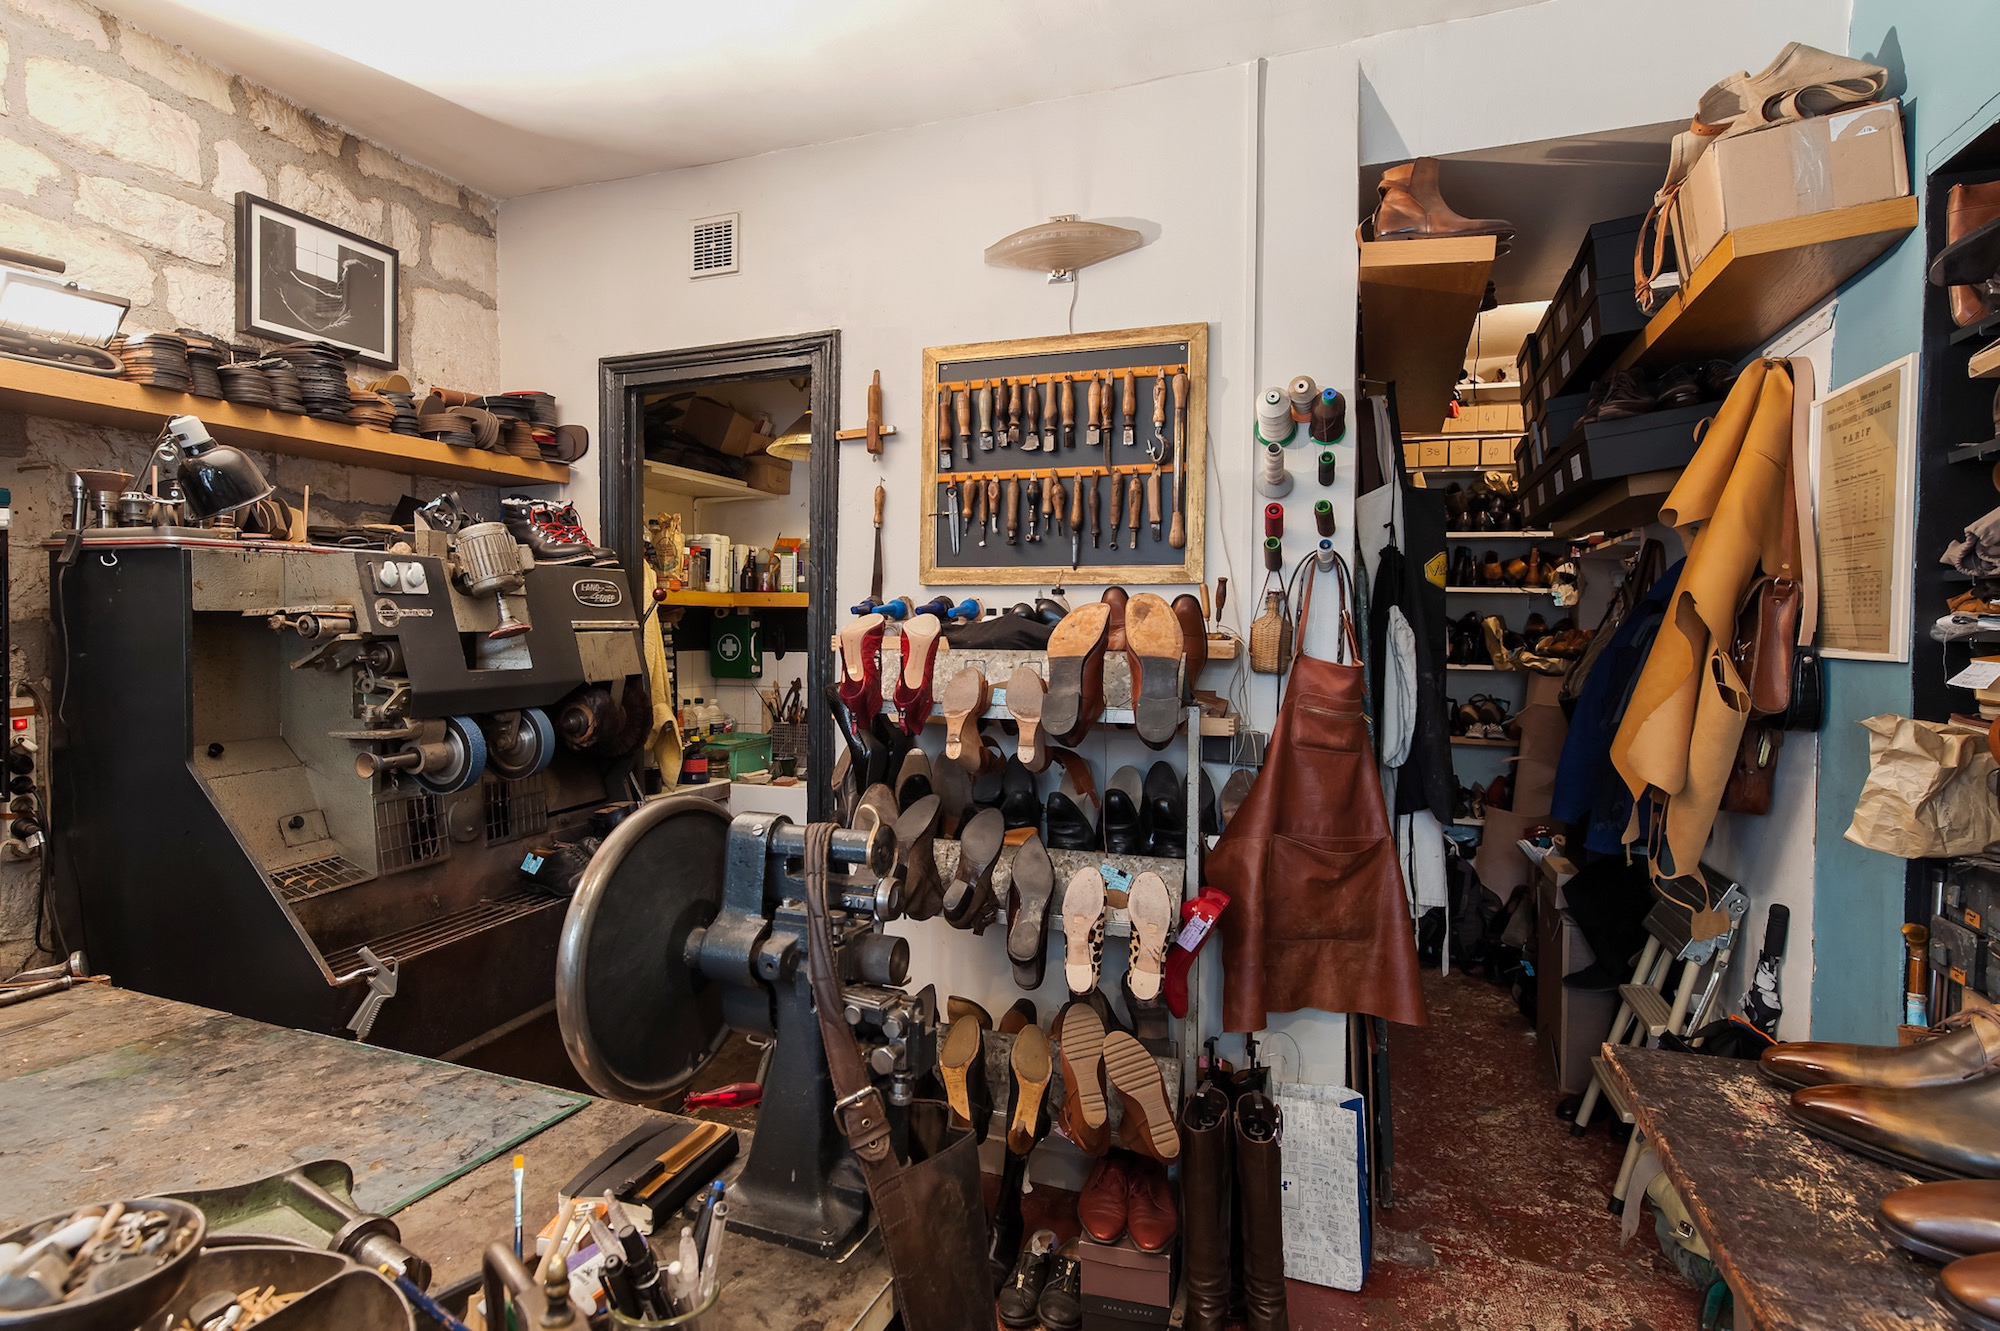 Inside the workshop of artisanal cobbler Atelier Constance in Montmartre.